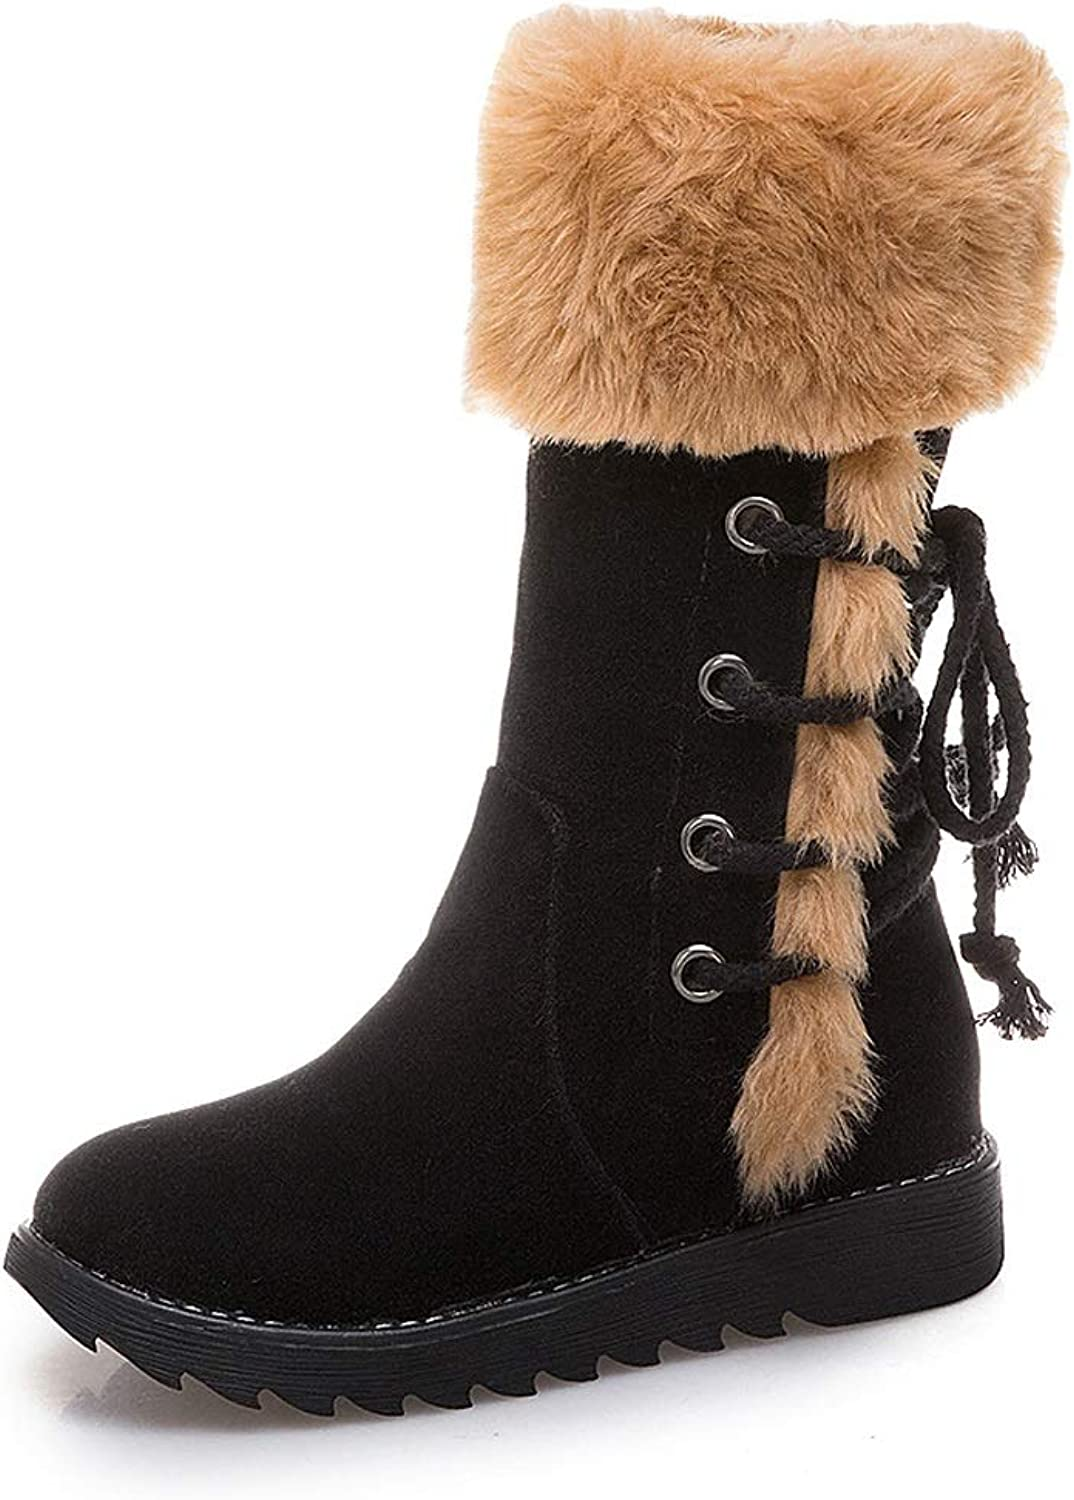 Women's Booties, Pu Flat Rear Lace-up Fashion Boots Ladies Wear-Resistant Non- Slip Microfiber Martin Boots (color   C, Size   43)